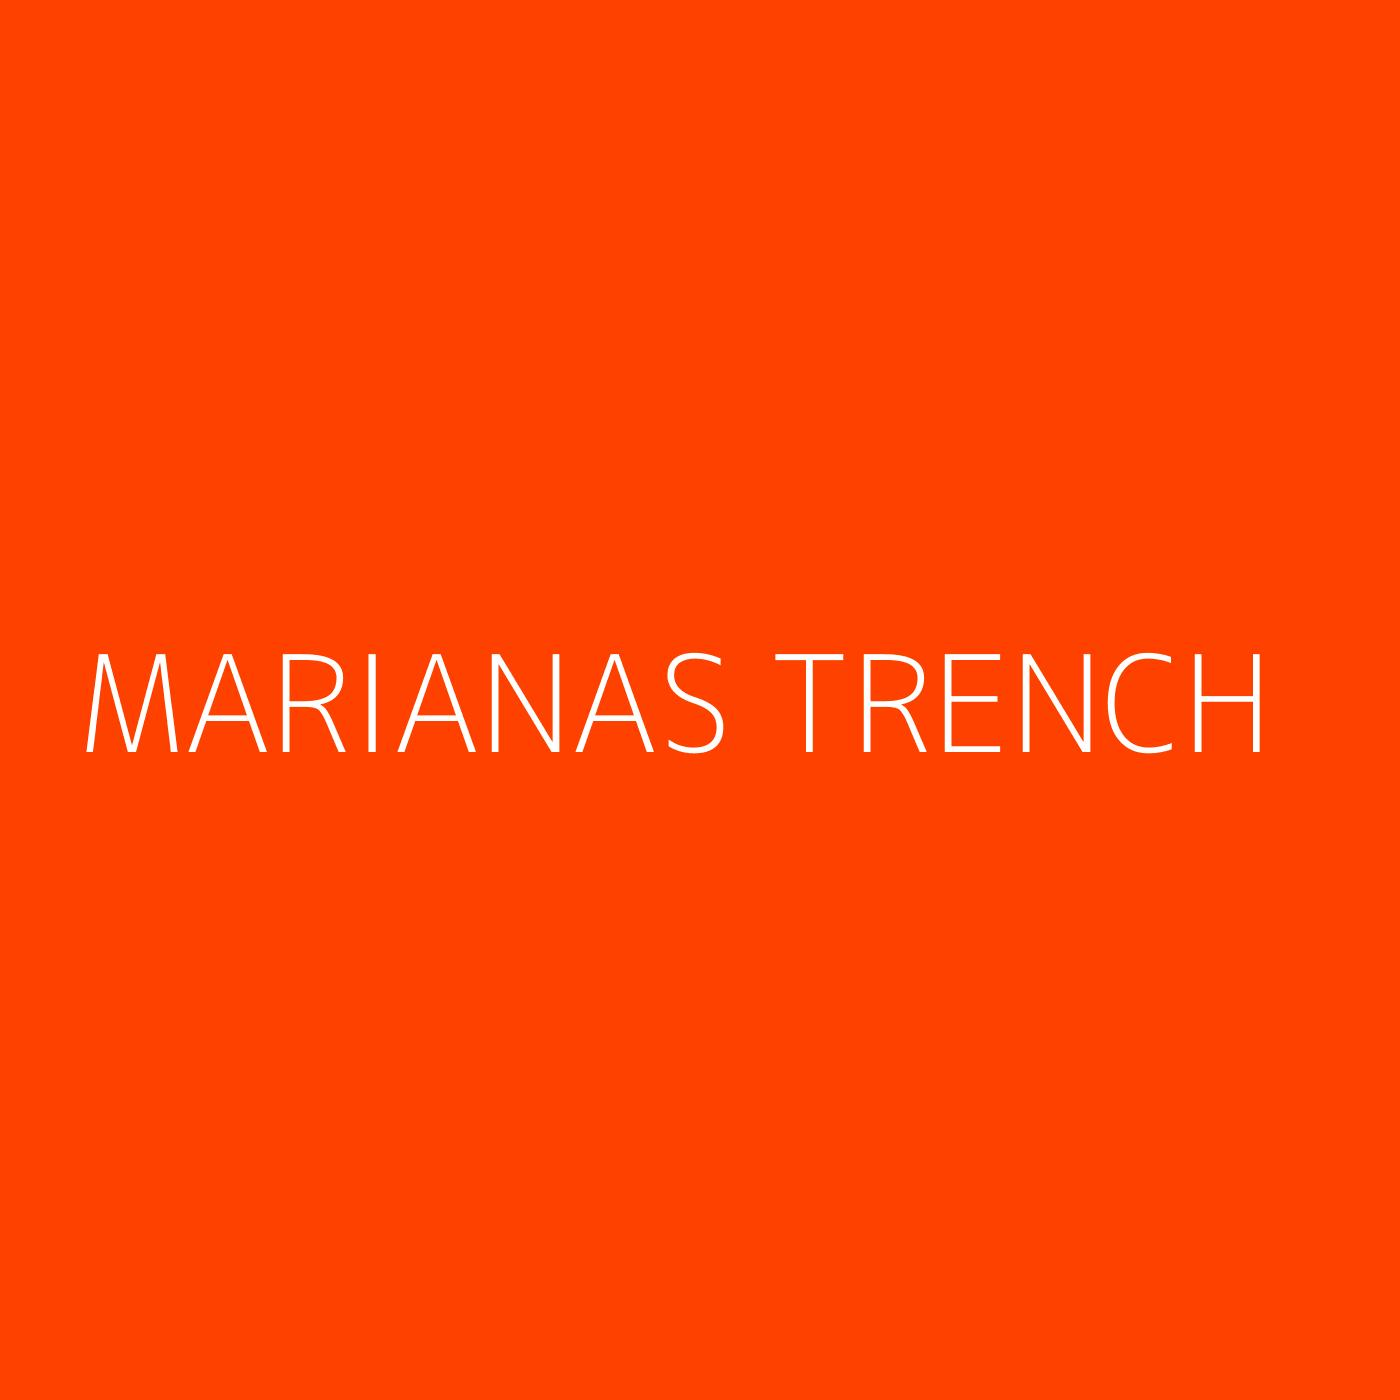 Marianas Trench Playlist Artwork